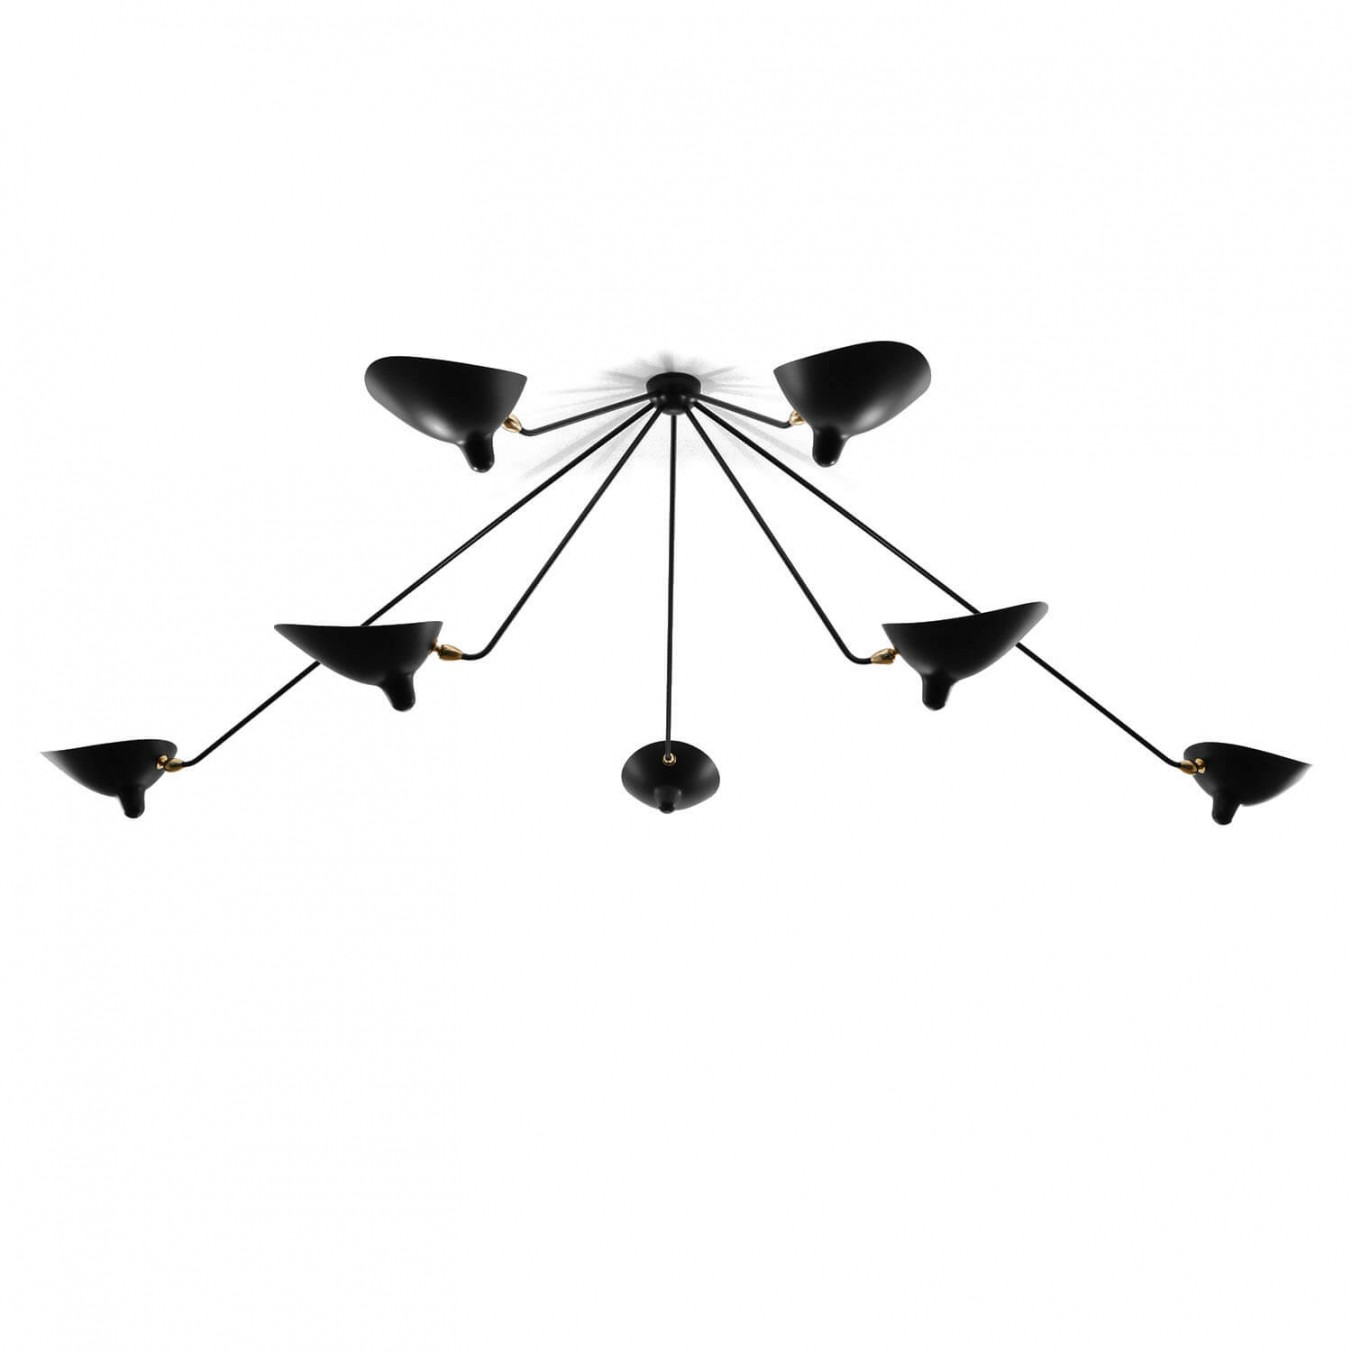 Spider Ceiling Light with 7 fixed arms